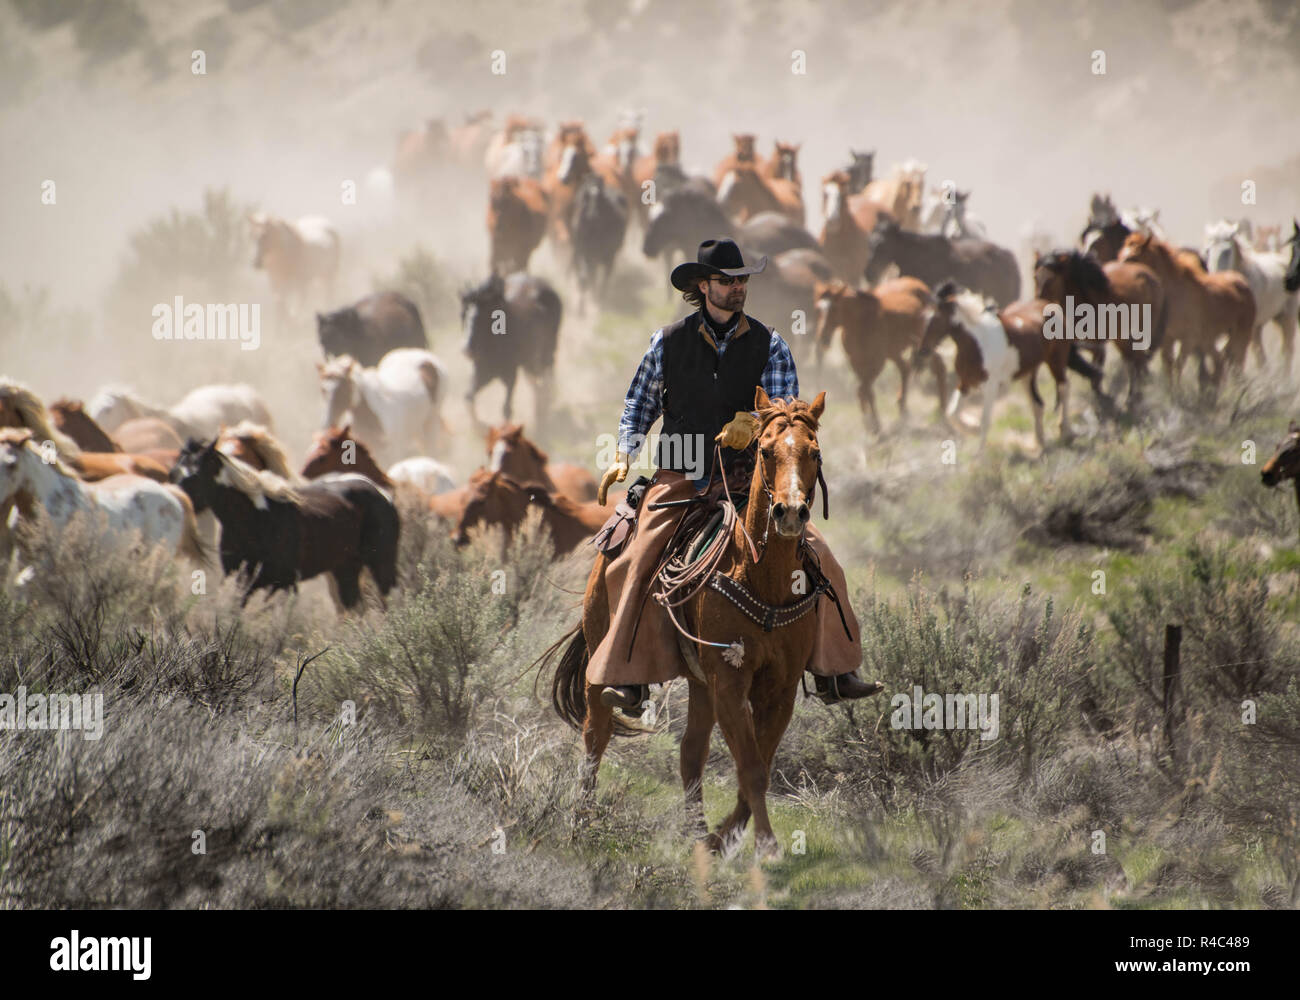 Cowboy wrangler ranch hand riding sorrel horse at a gallop rounding up herd of running horses during trail drive, Craig, CO, USA May 5, 2018 Stock Photo